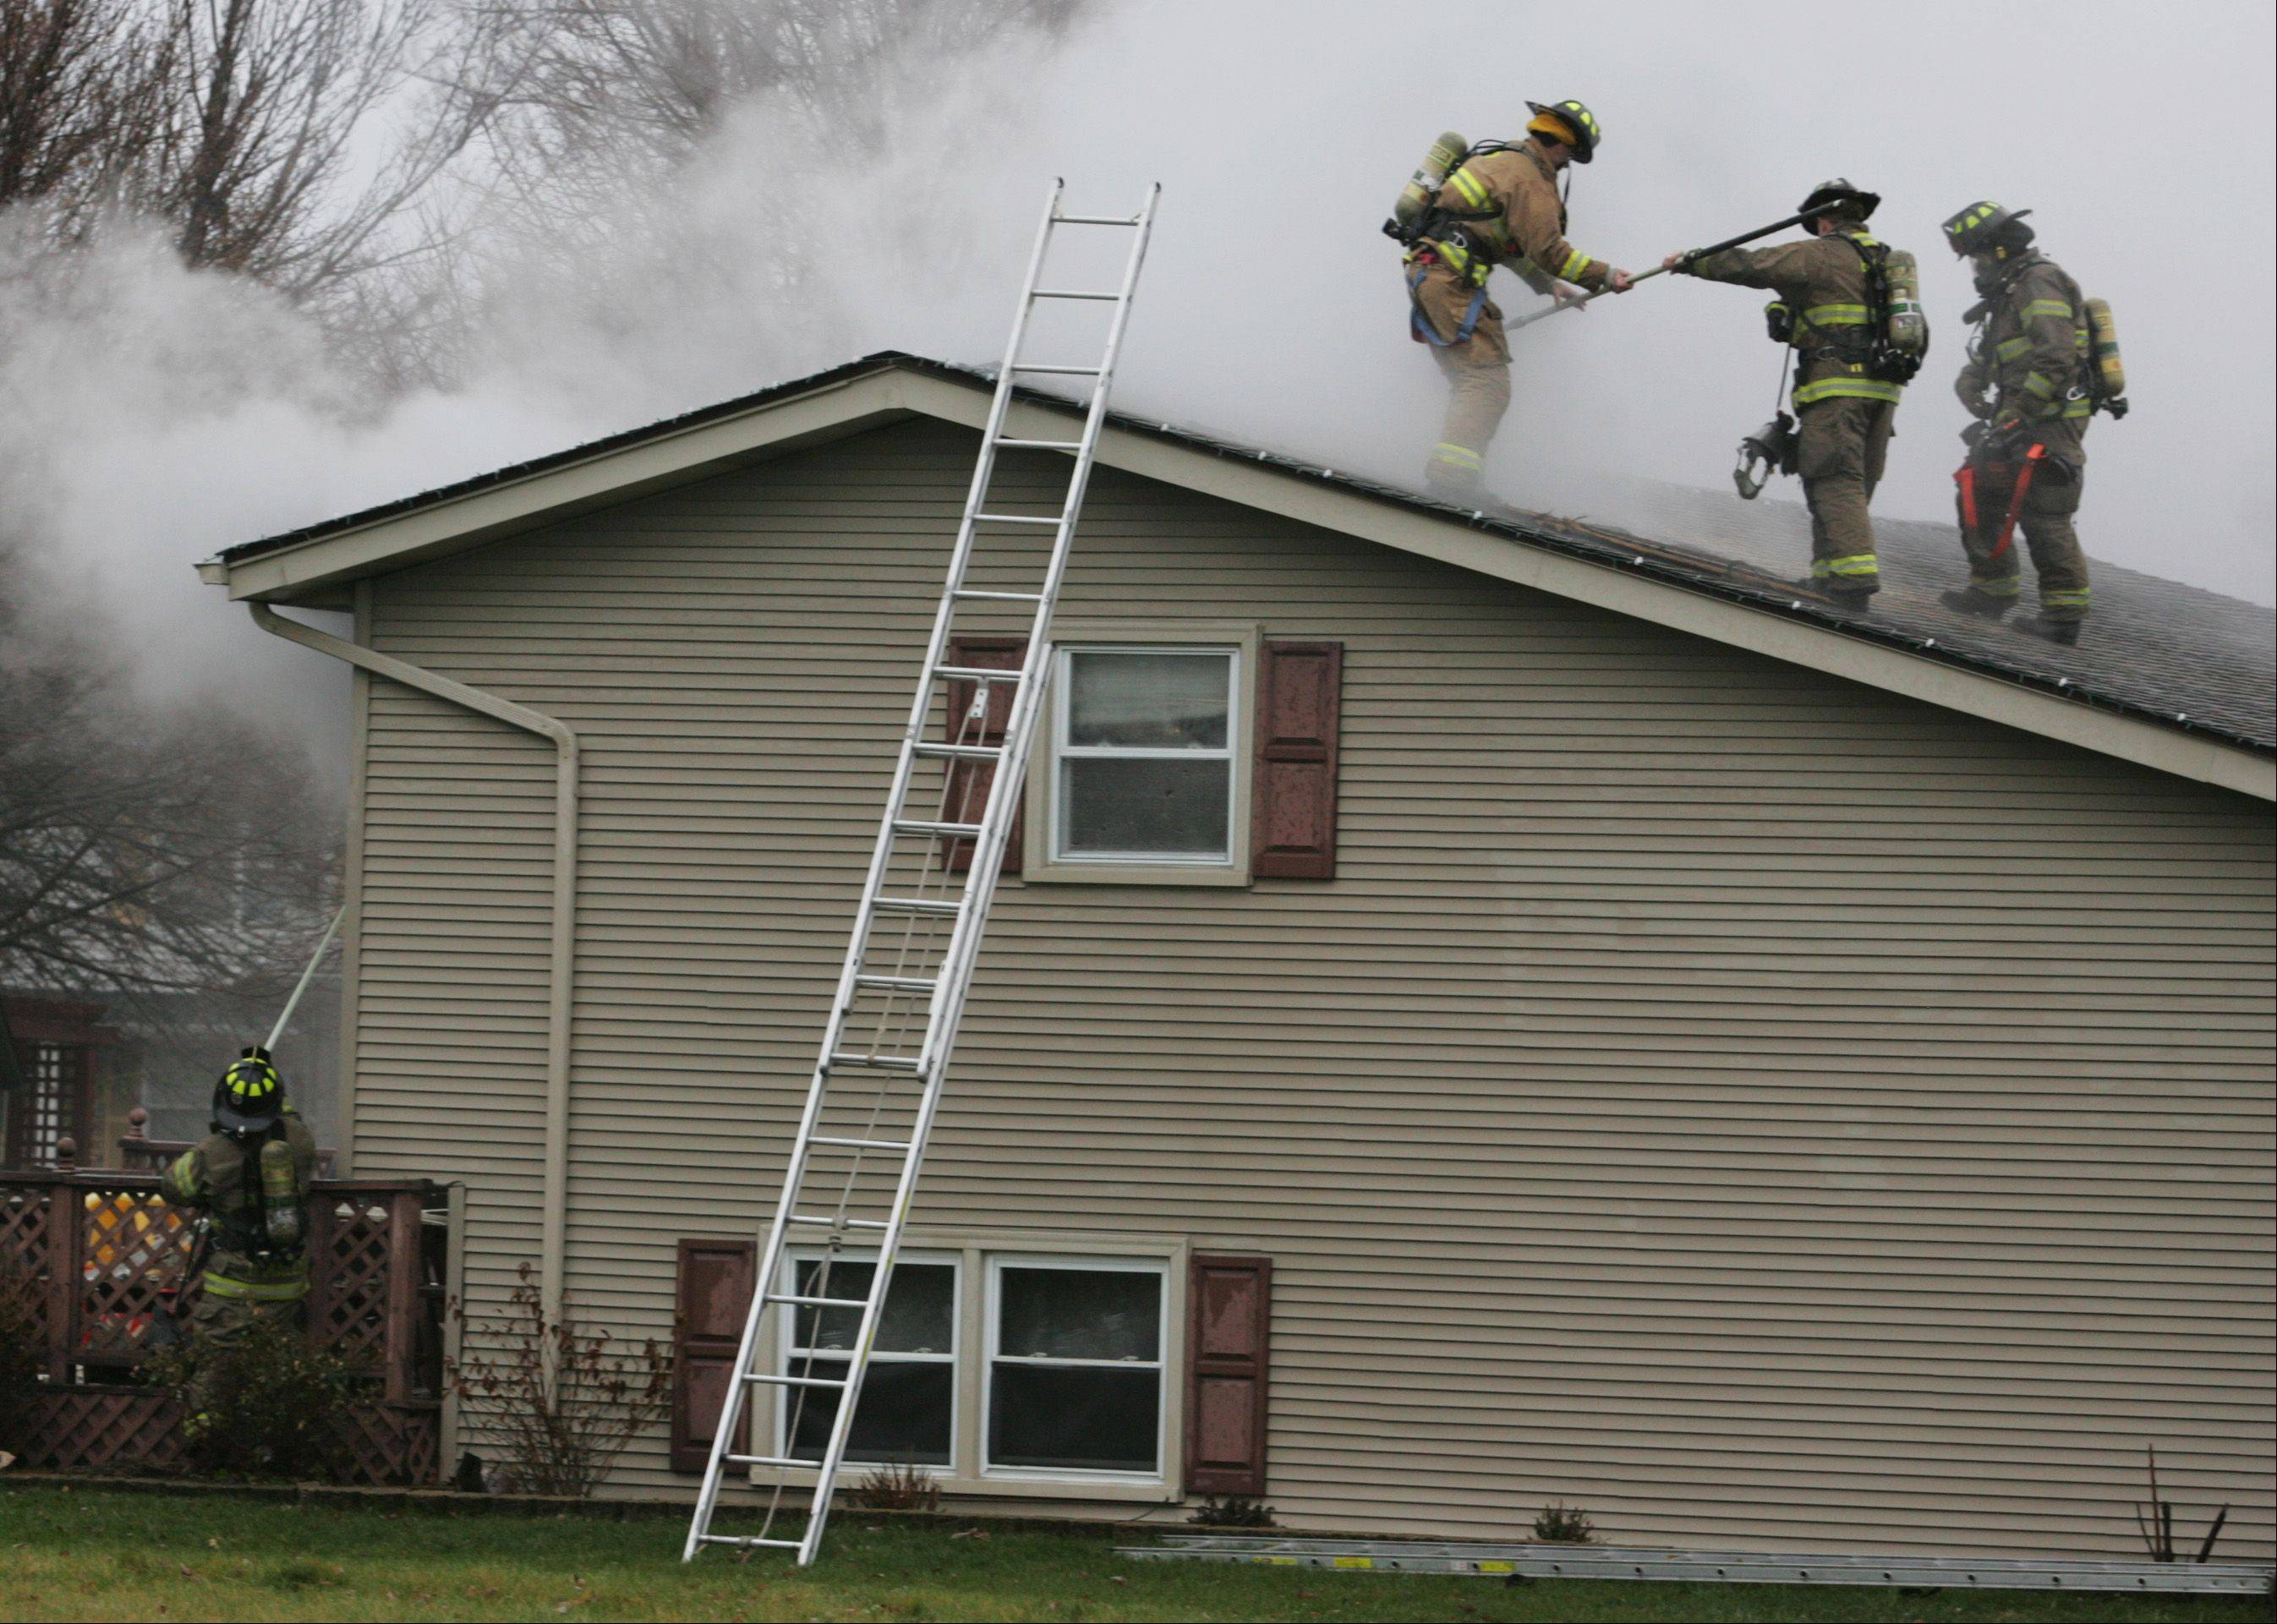 Firefighters cut a hole in the roof of a home on Sheffield Drive in Elgin where a Christmas tree caught fire Wednesday. All of the residents escaped safely, and several dogs were rescued as well.